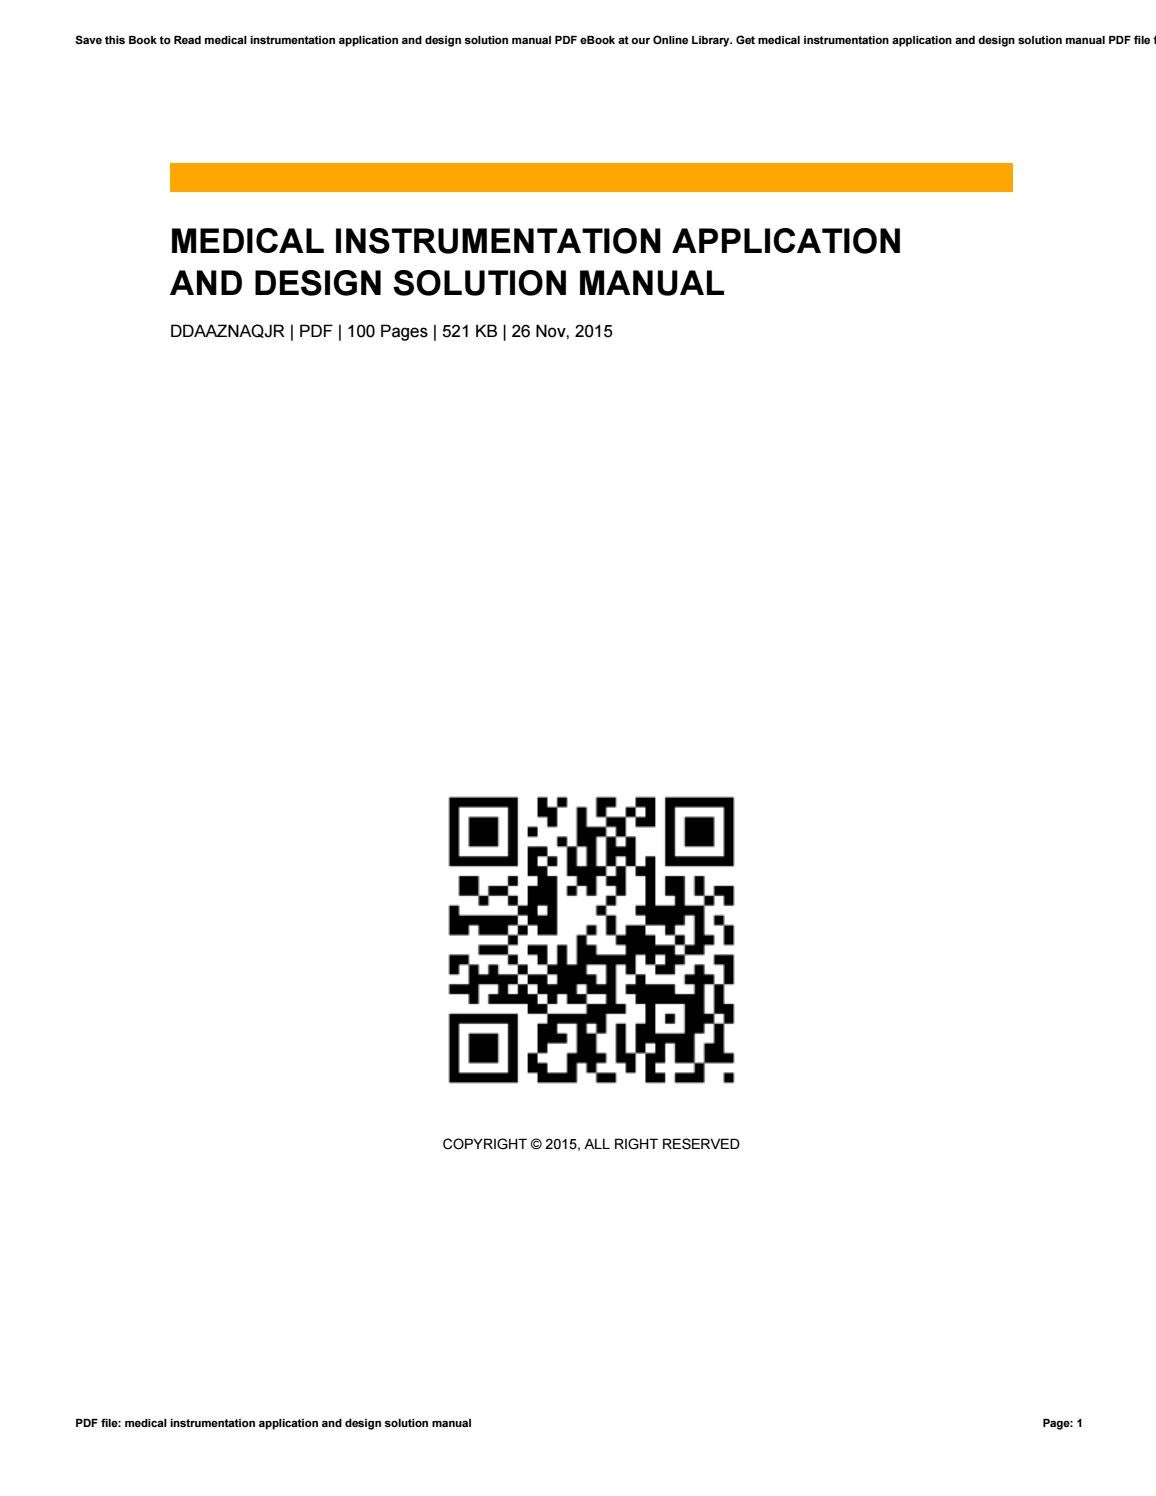 Medical instrumentation application and design solution manual by  VictorStreeter1614 - issuu